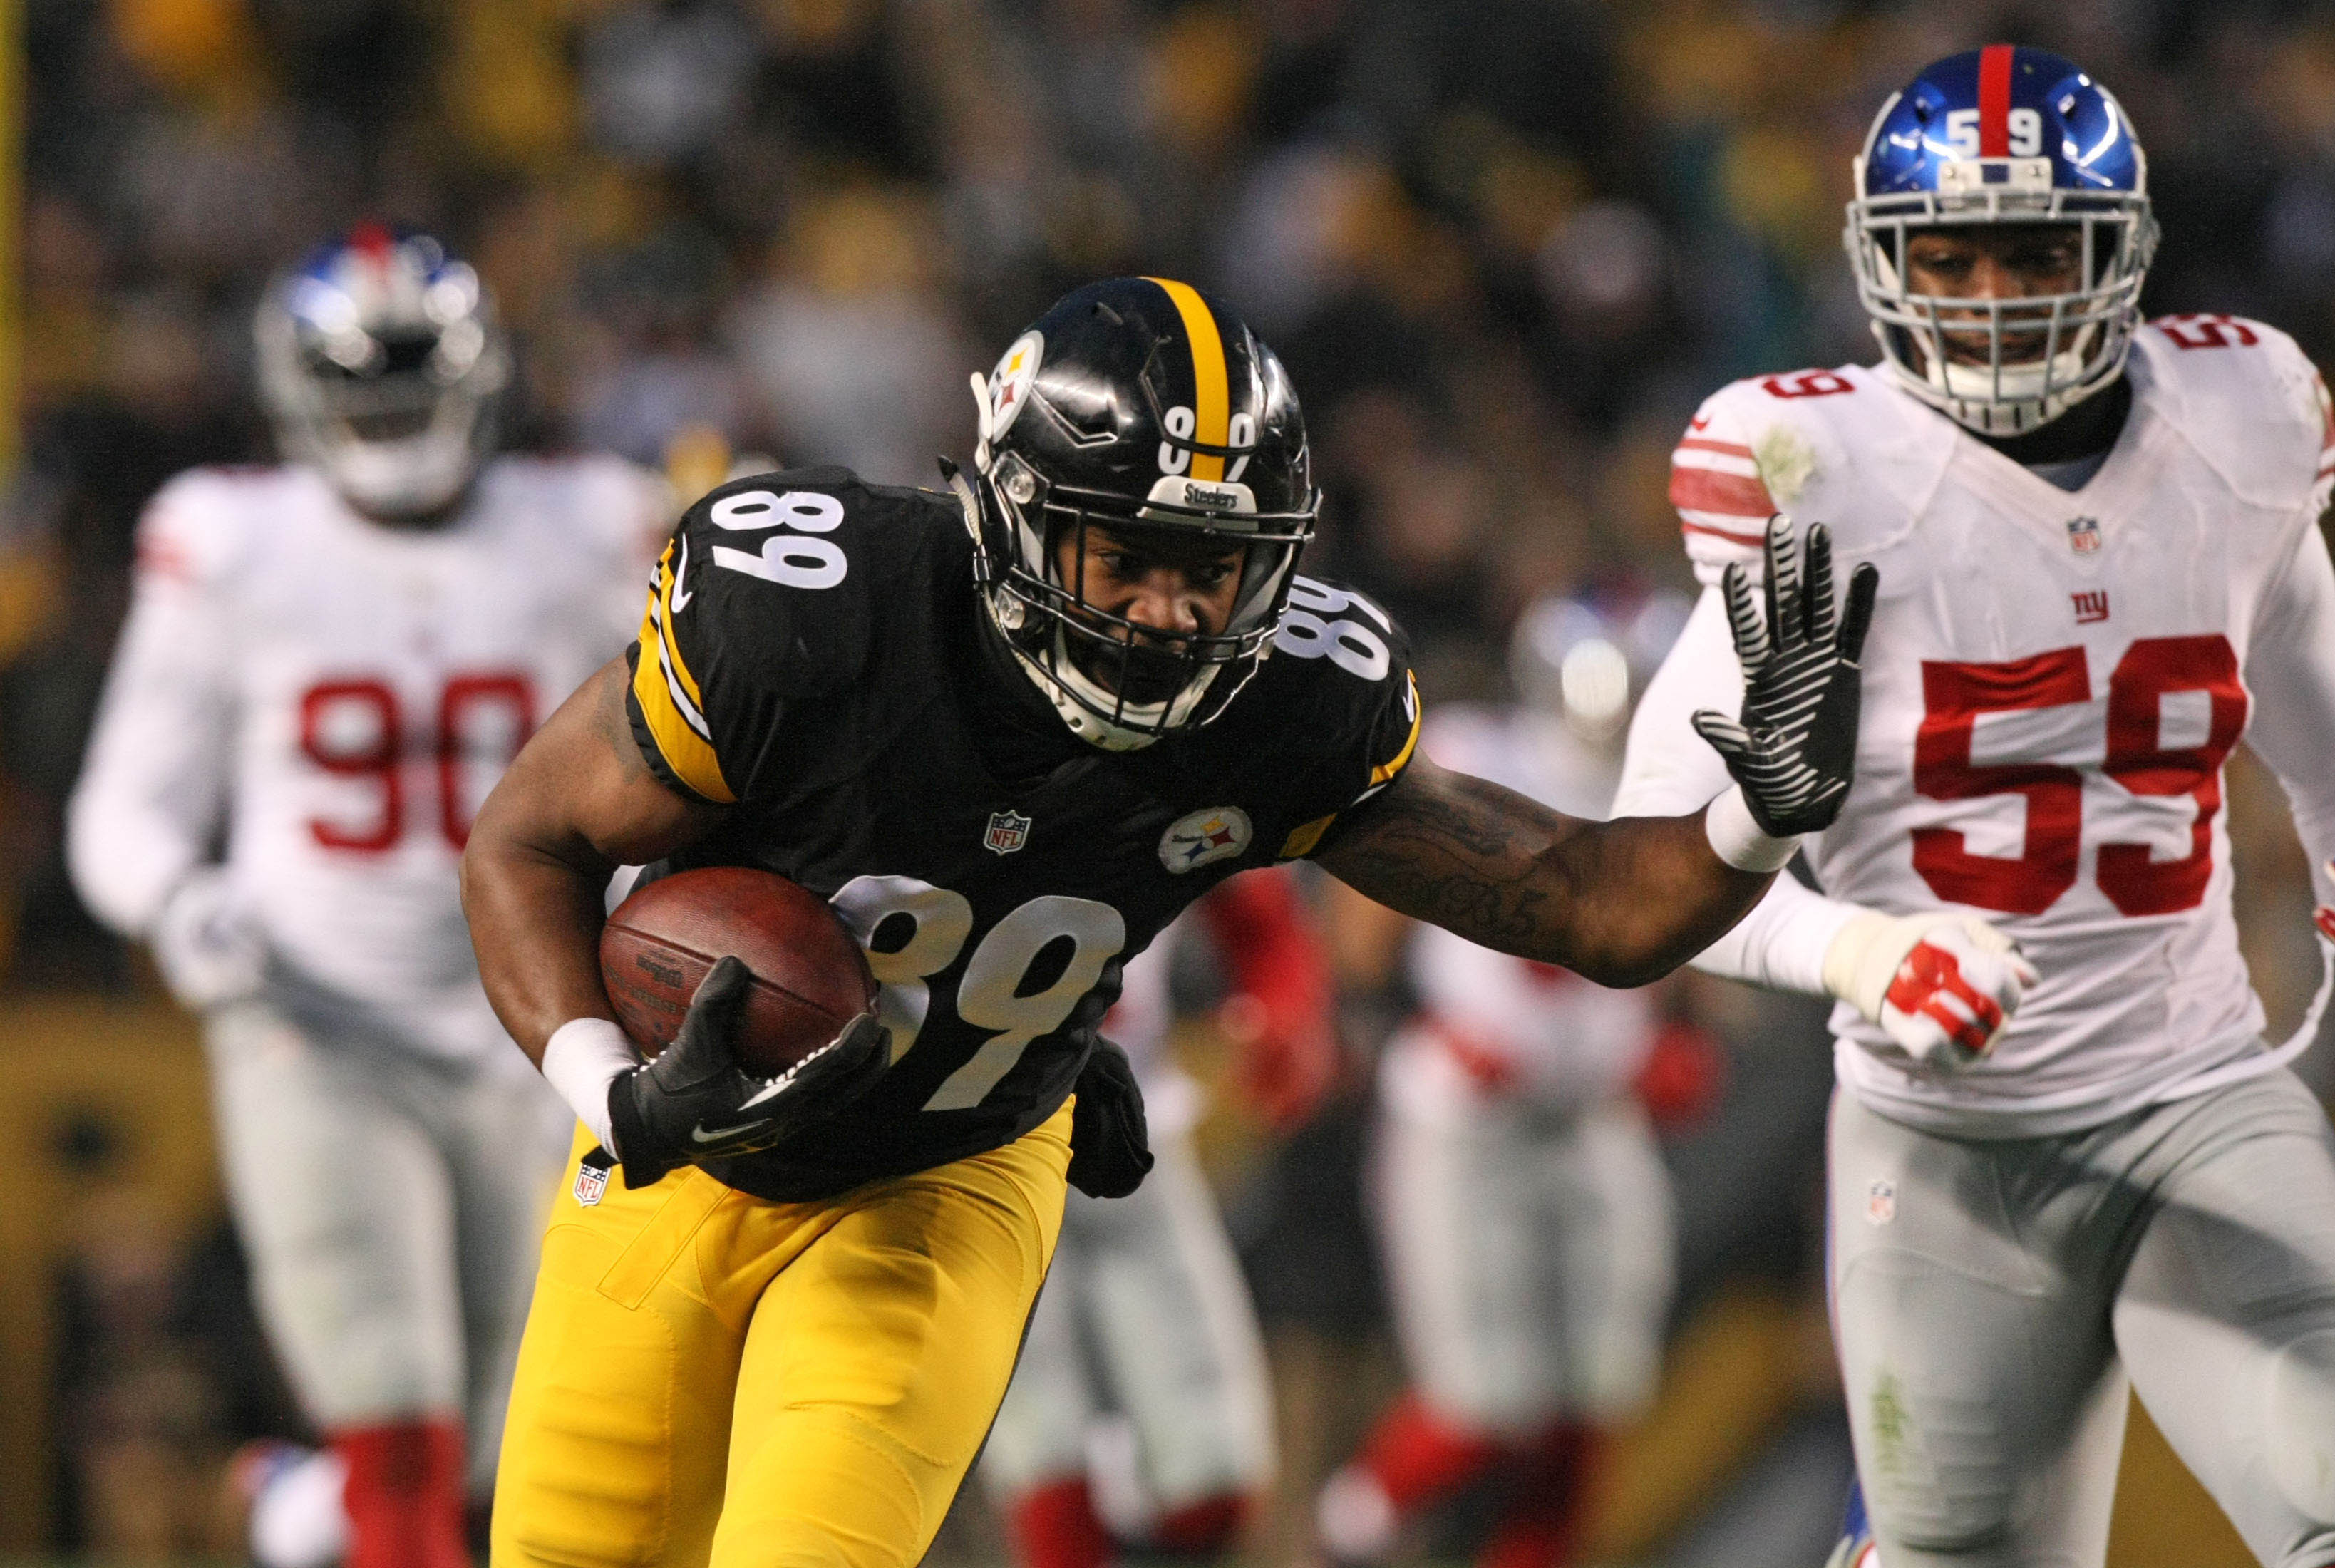 9726068-nfl-new-york-giants-at-pittsburgh-steelers